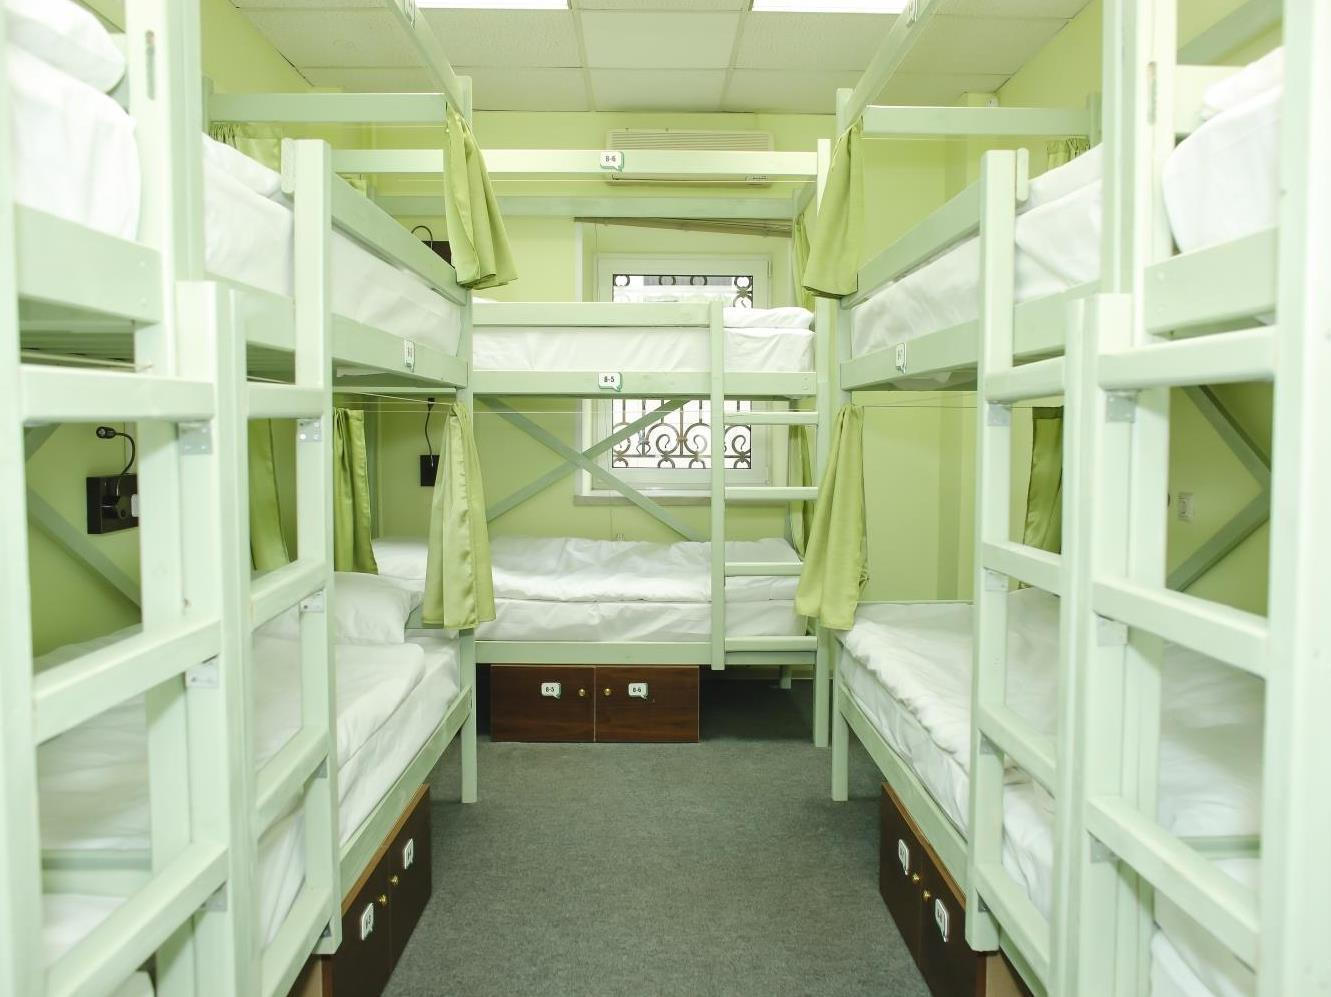 10-Bed Dormitory (Female)